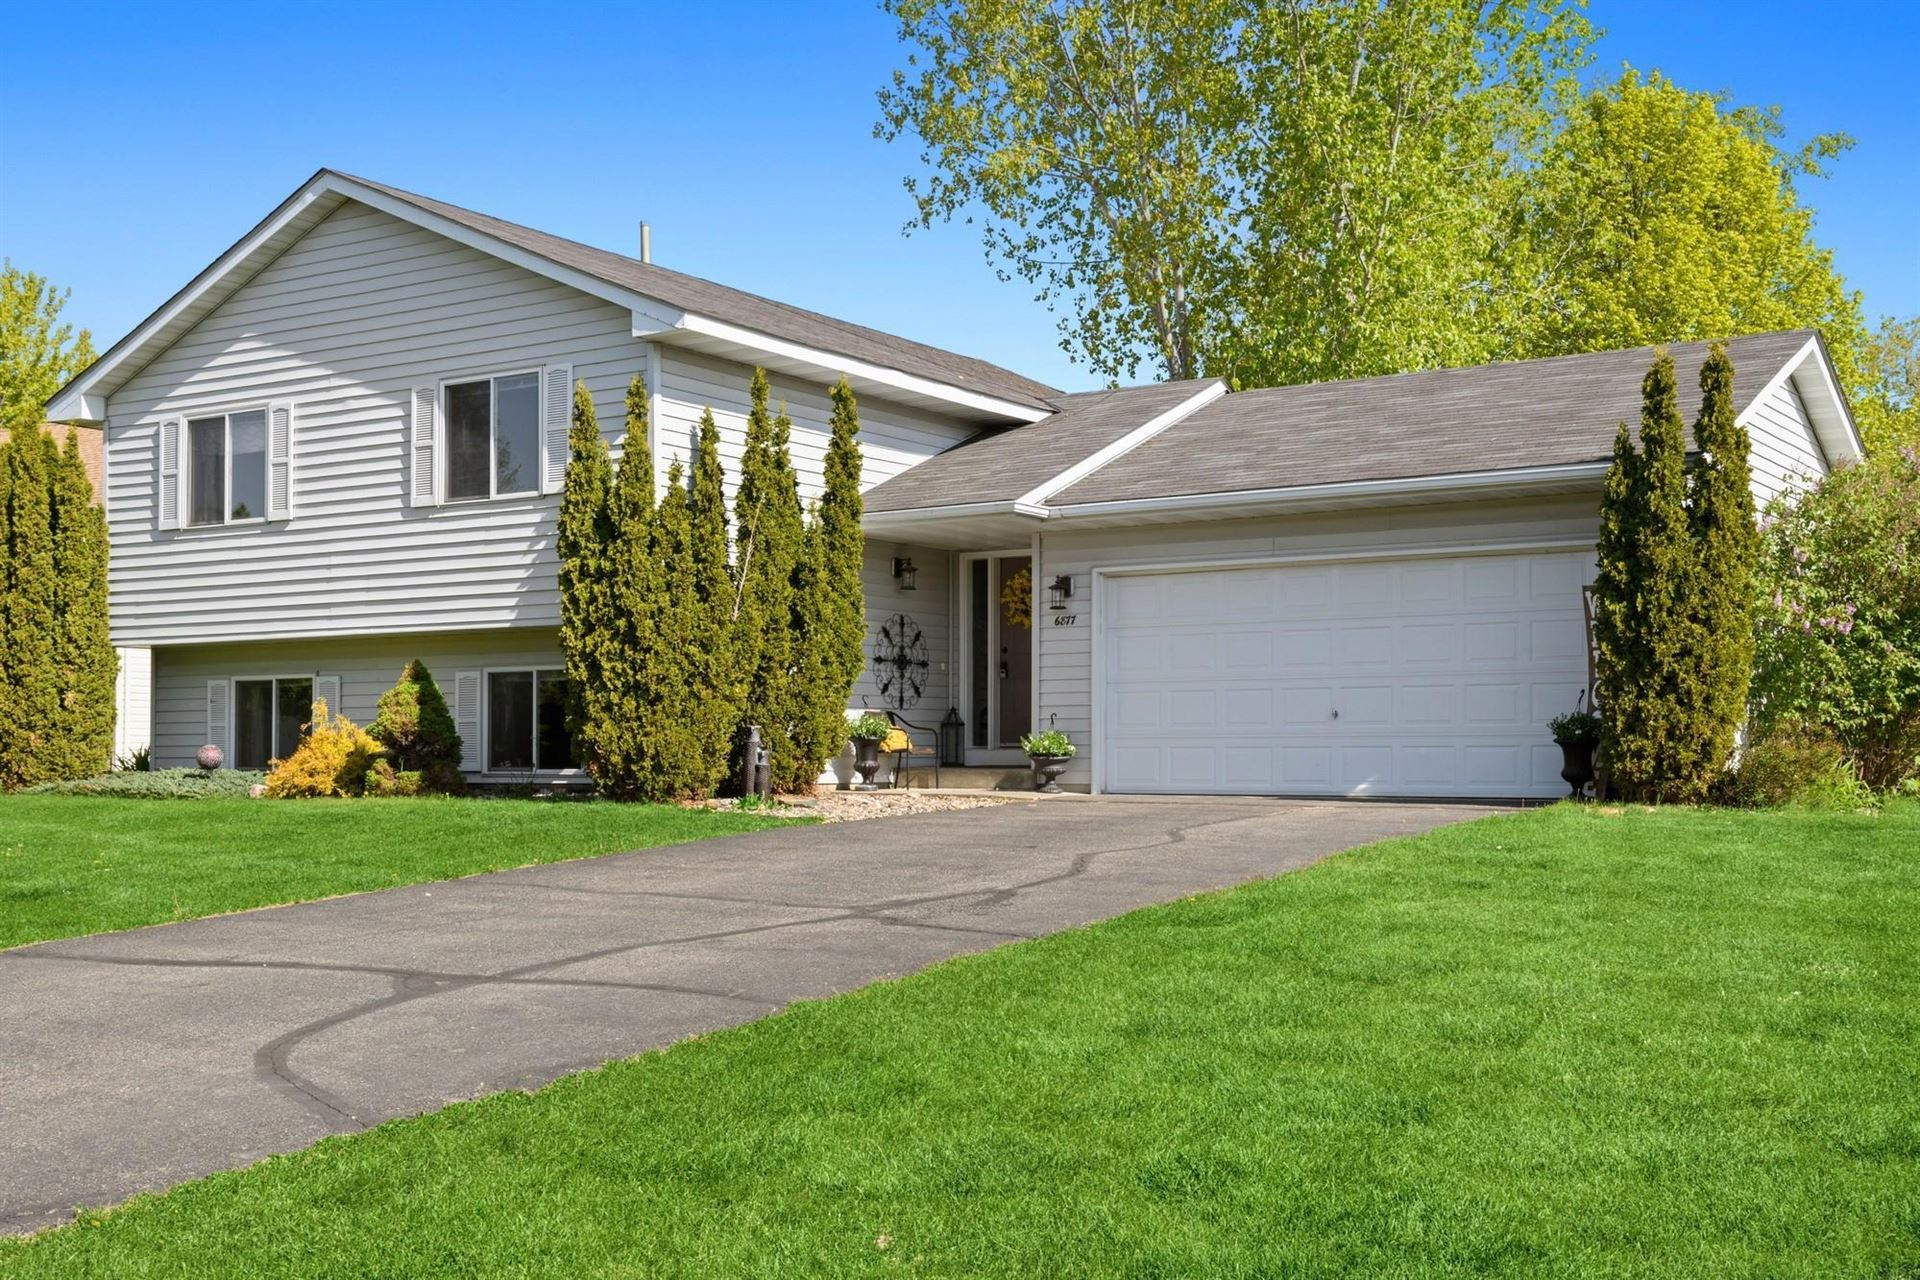 Photo of 6877 174th Street W, Lakeville, MN 55024 (MLS # 5754000)